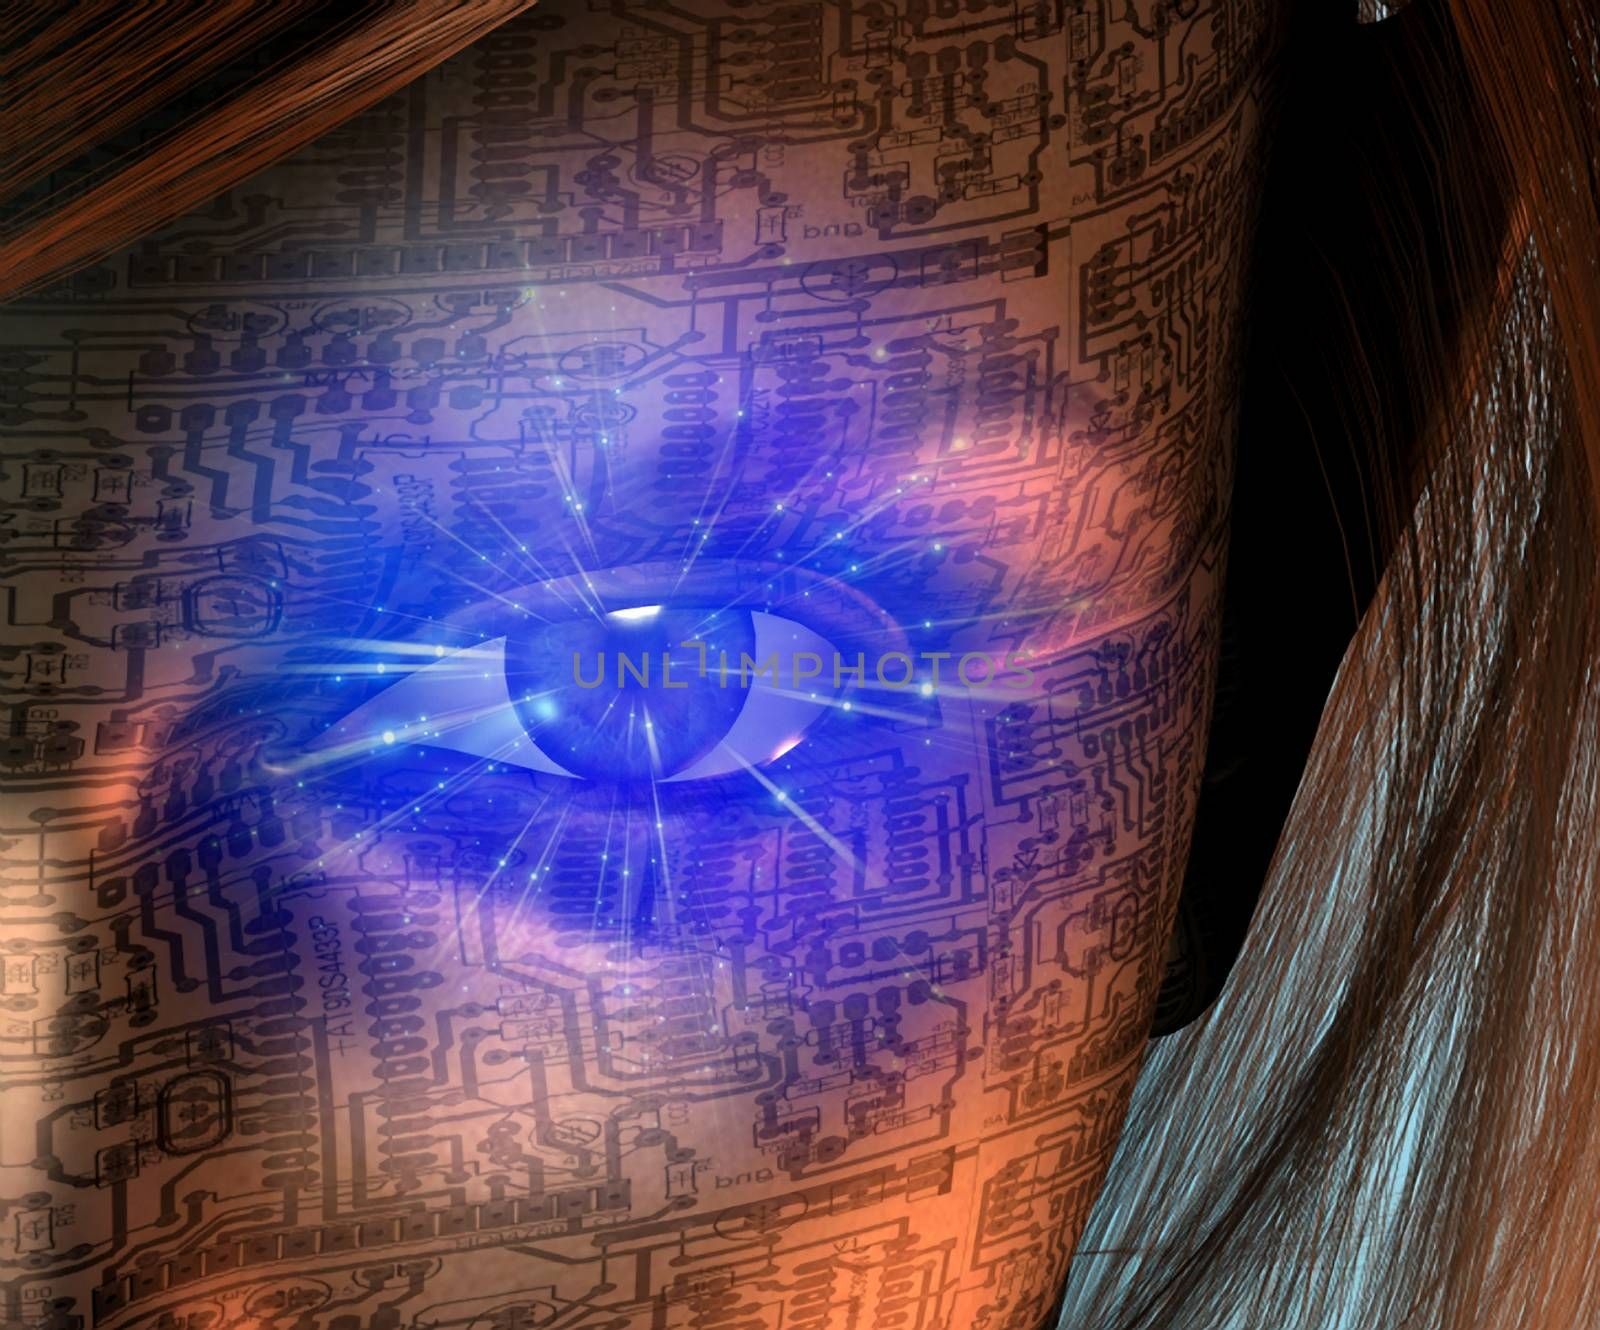 Technology Human. Woman face with electric circuit pattern and glowing eye